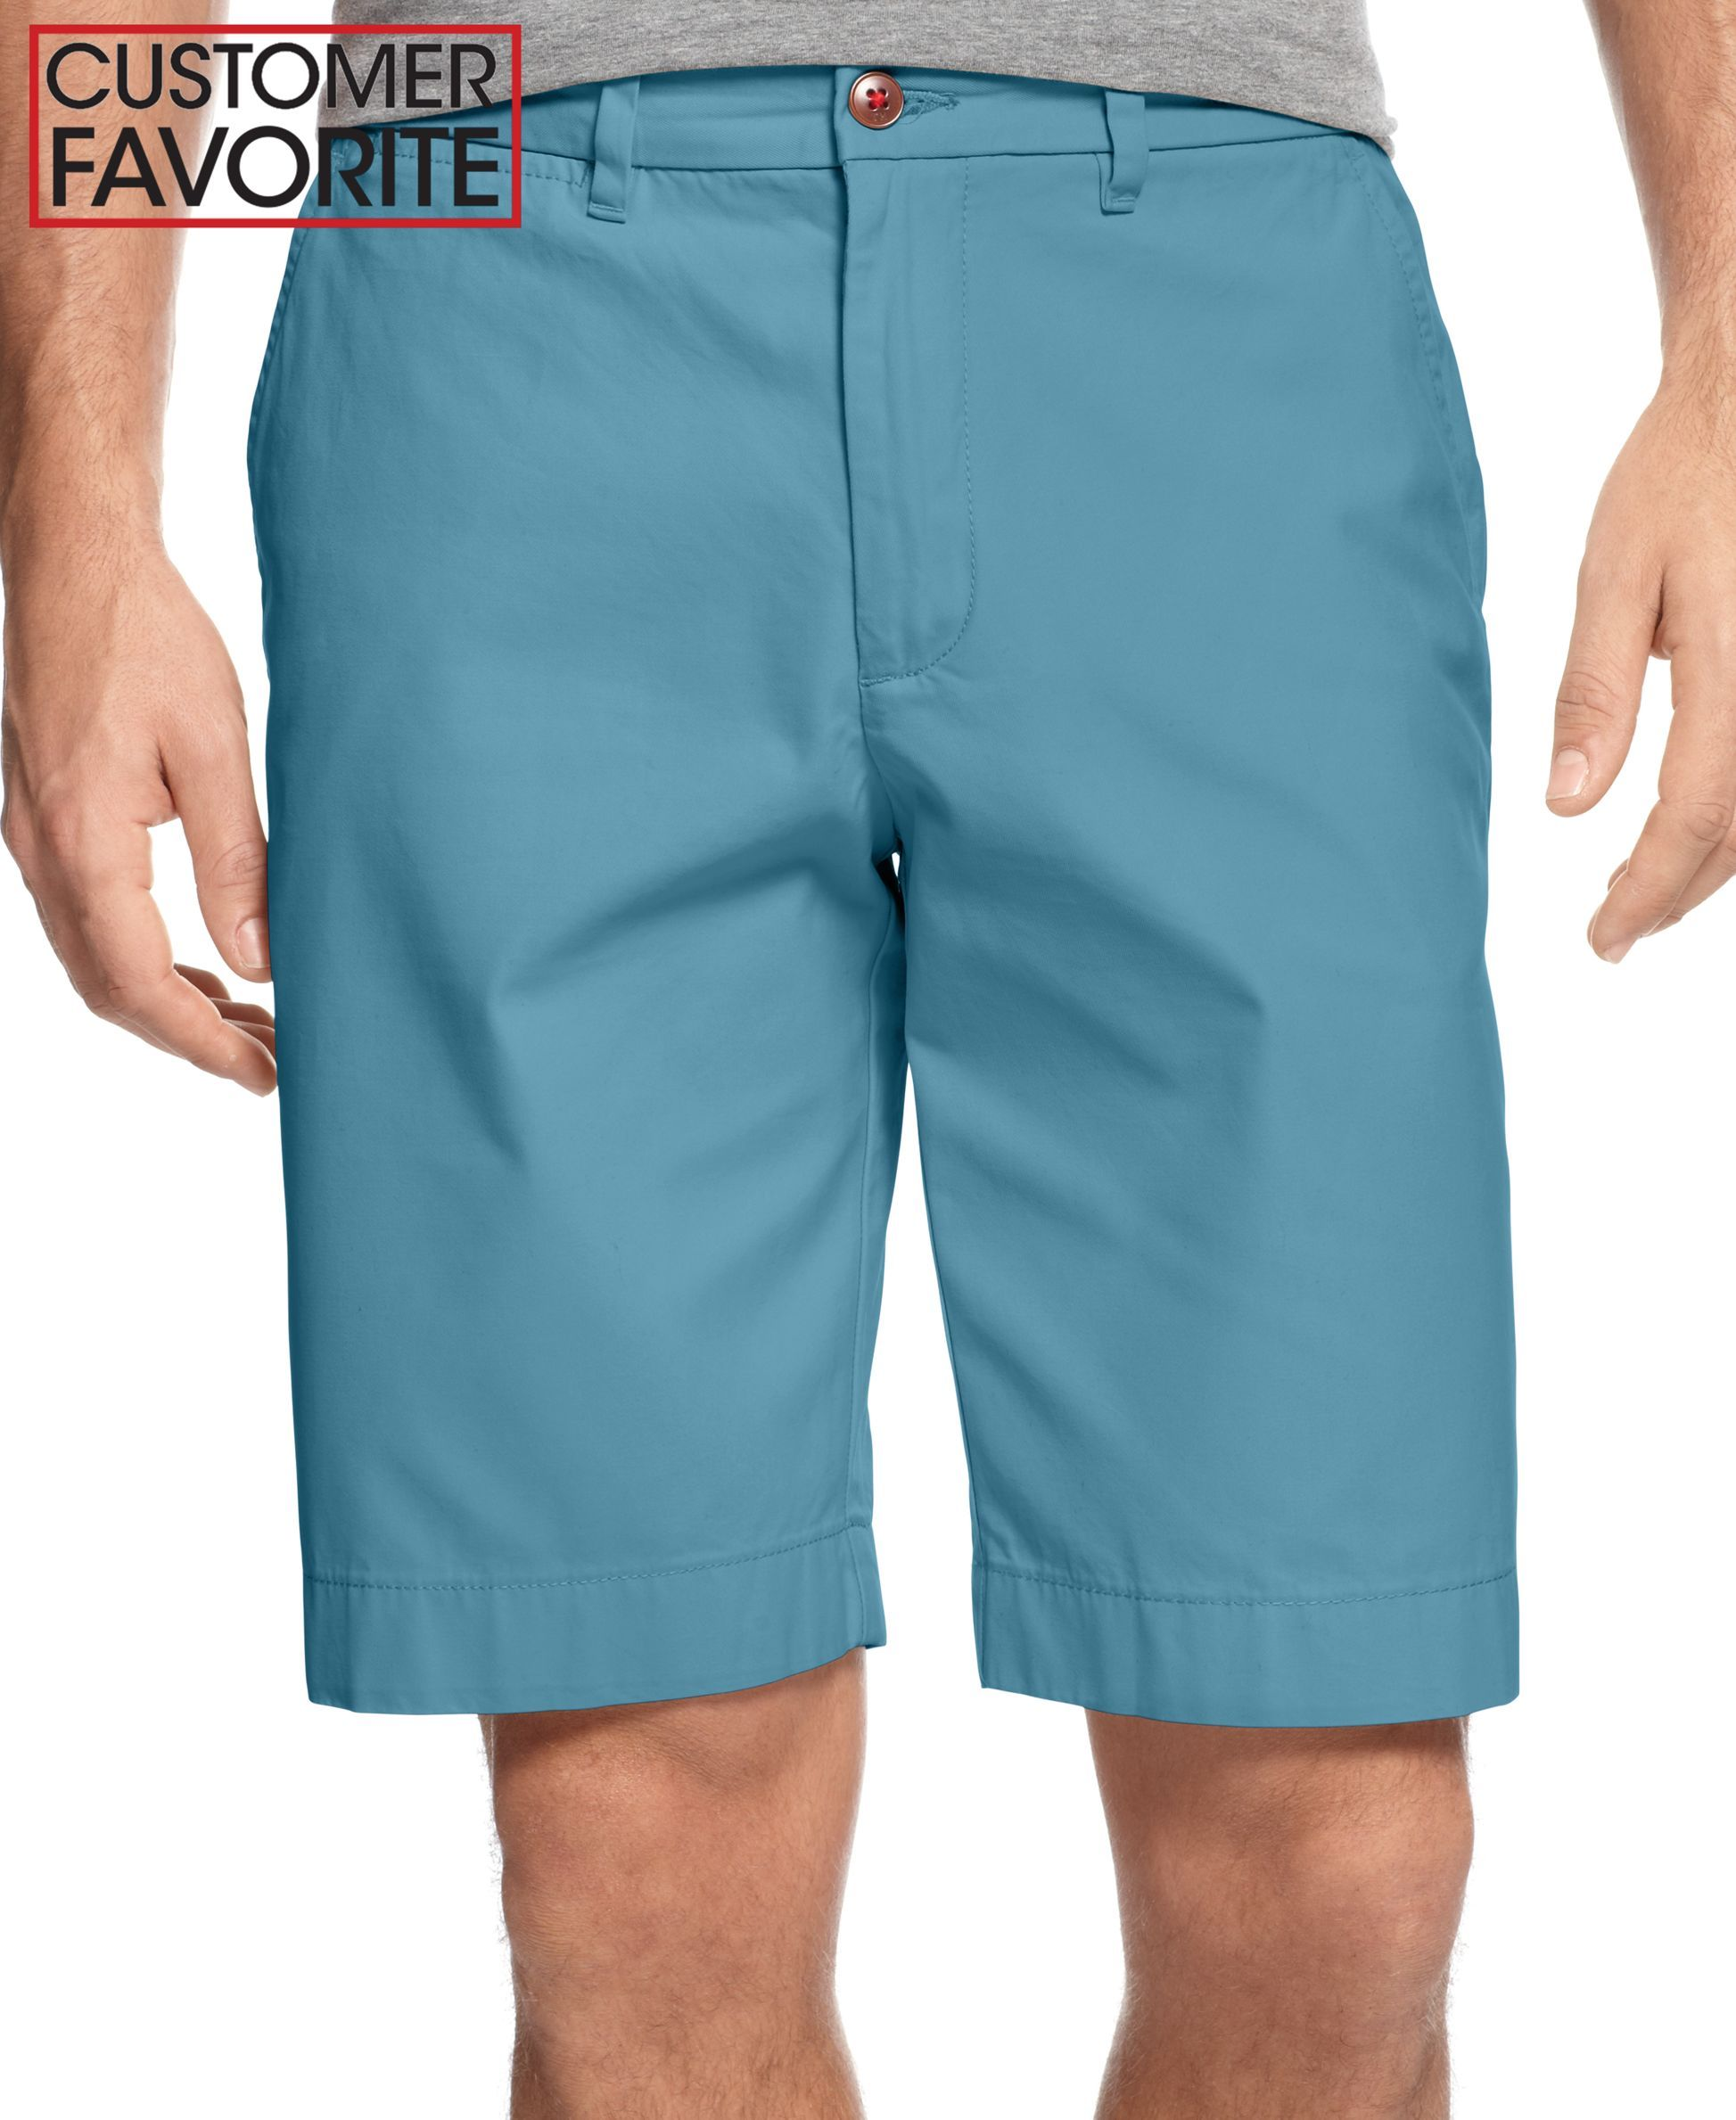 Tommy Hilfiger Classic-Fit Chino Shorts | Products | Pinterest ...